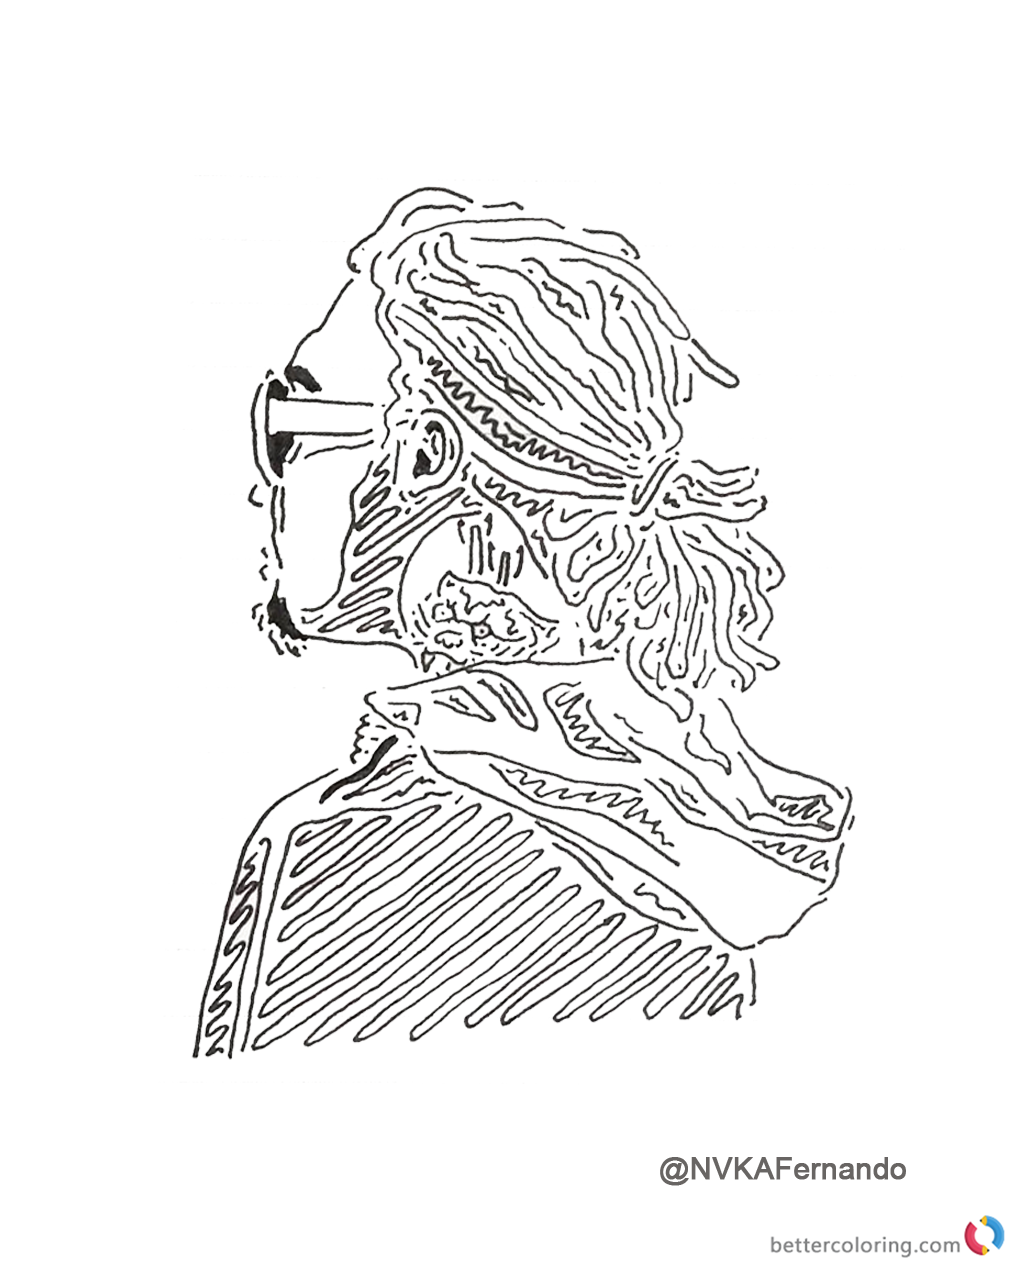 1024x1280 Lil Pump Coloring Pages Fan Drawing